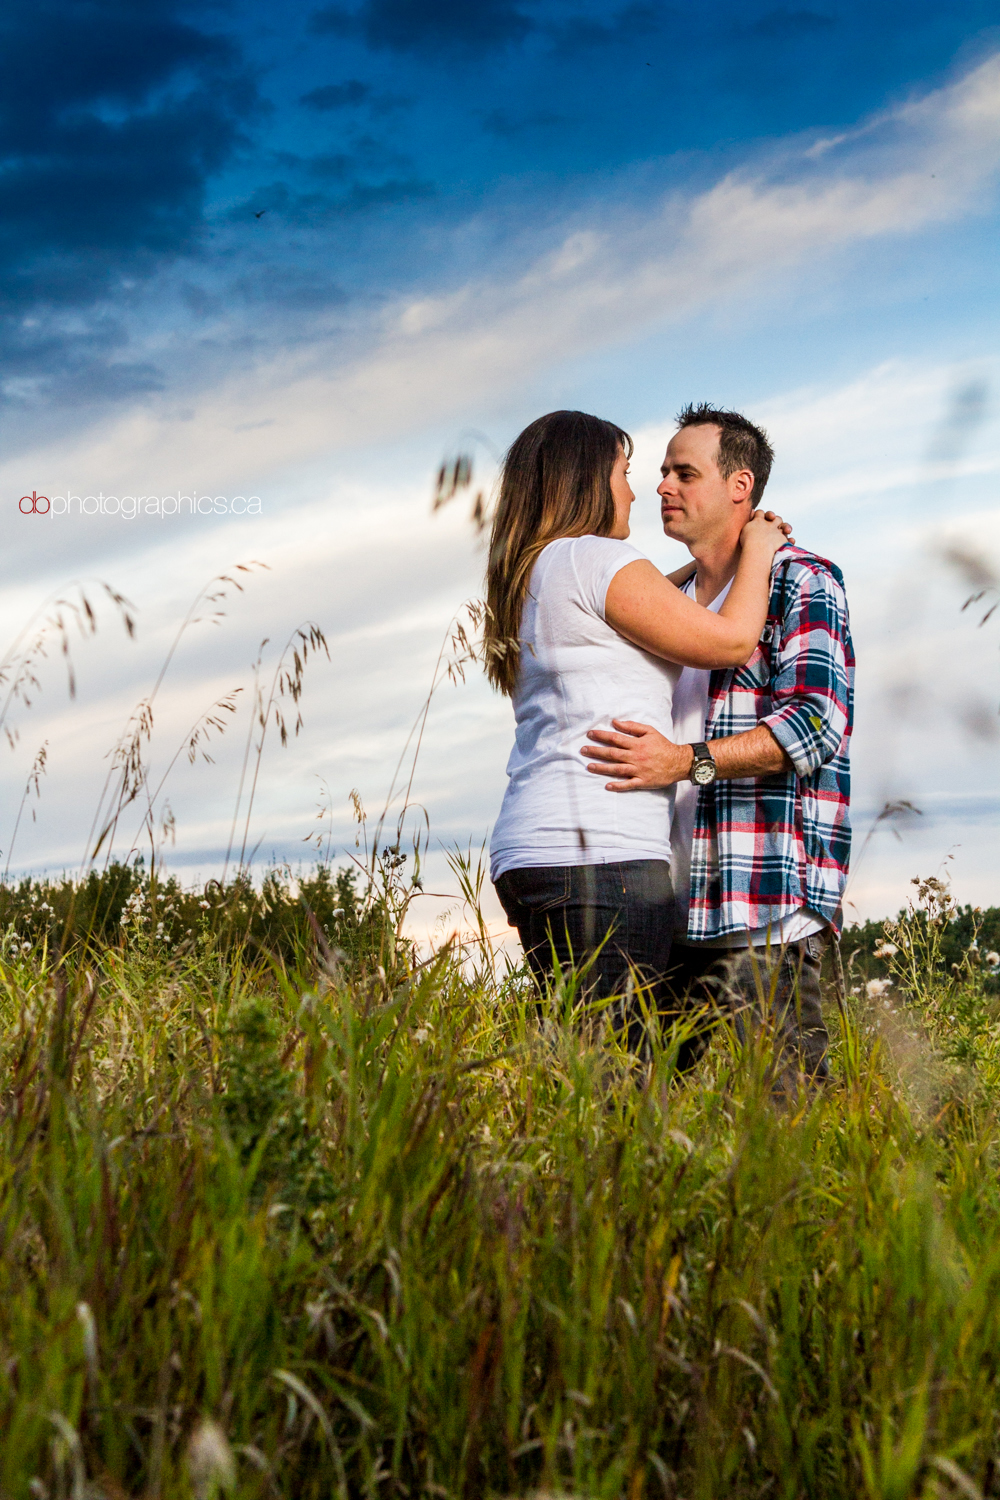 Rob & Alicia Engagement Shoot - 20130922 - 0056.jpg